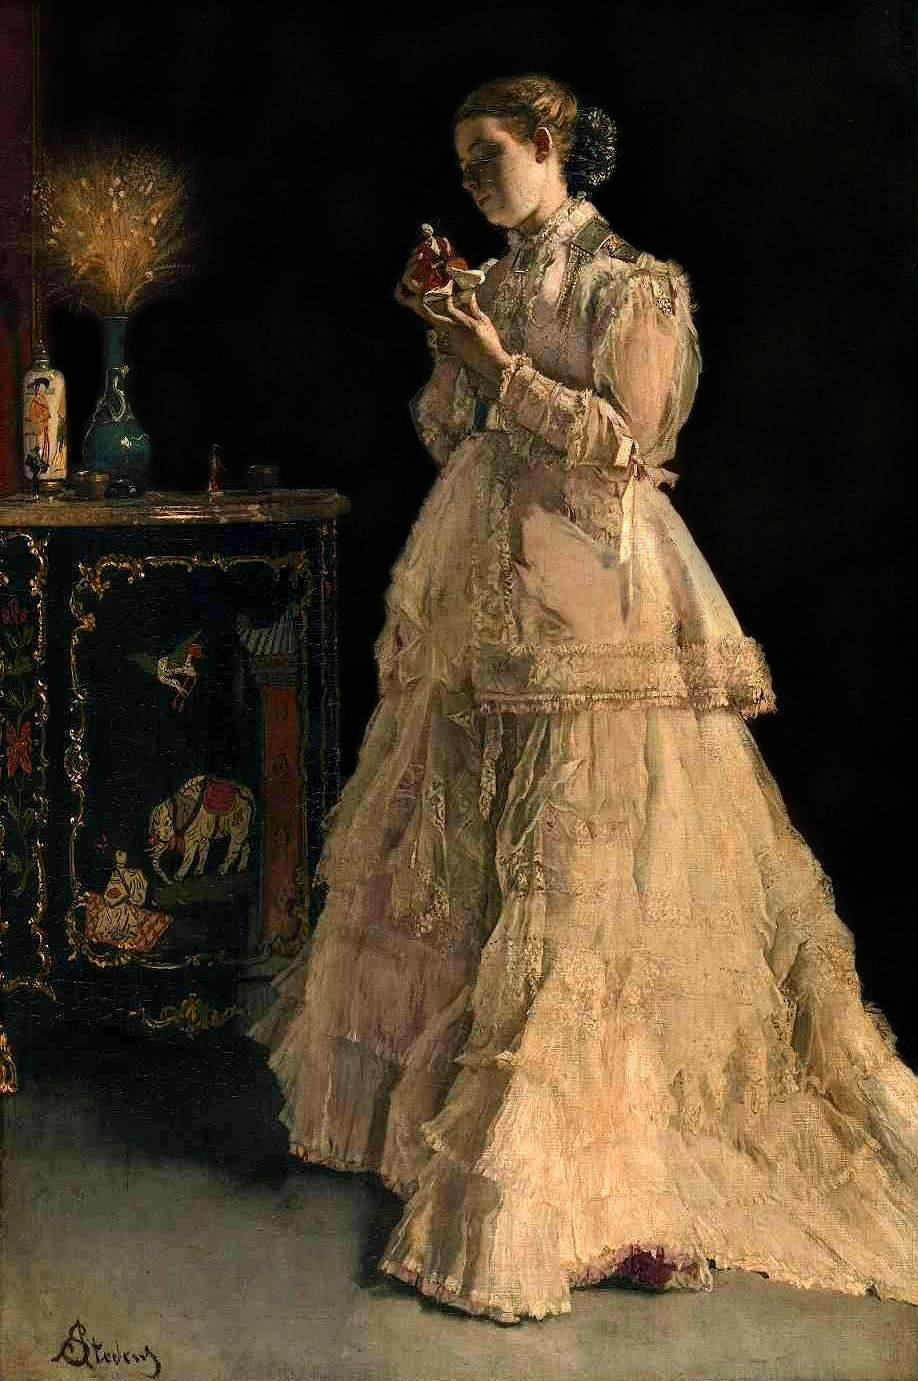 The Lady in Pink by Alfred Stevens, 1867